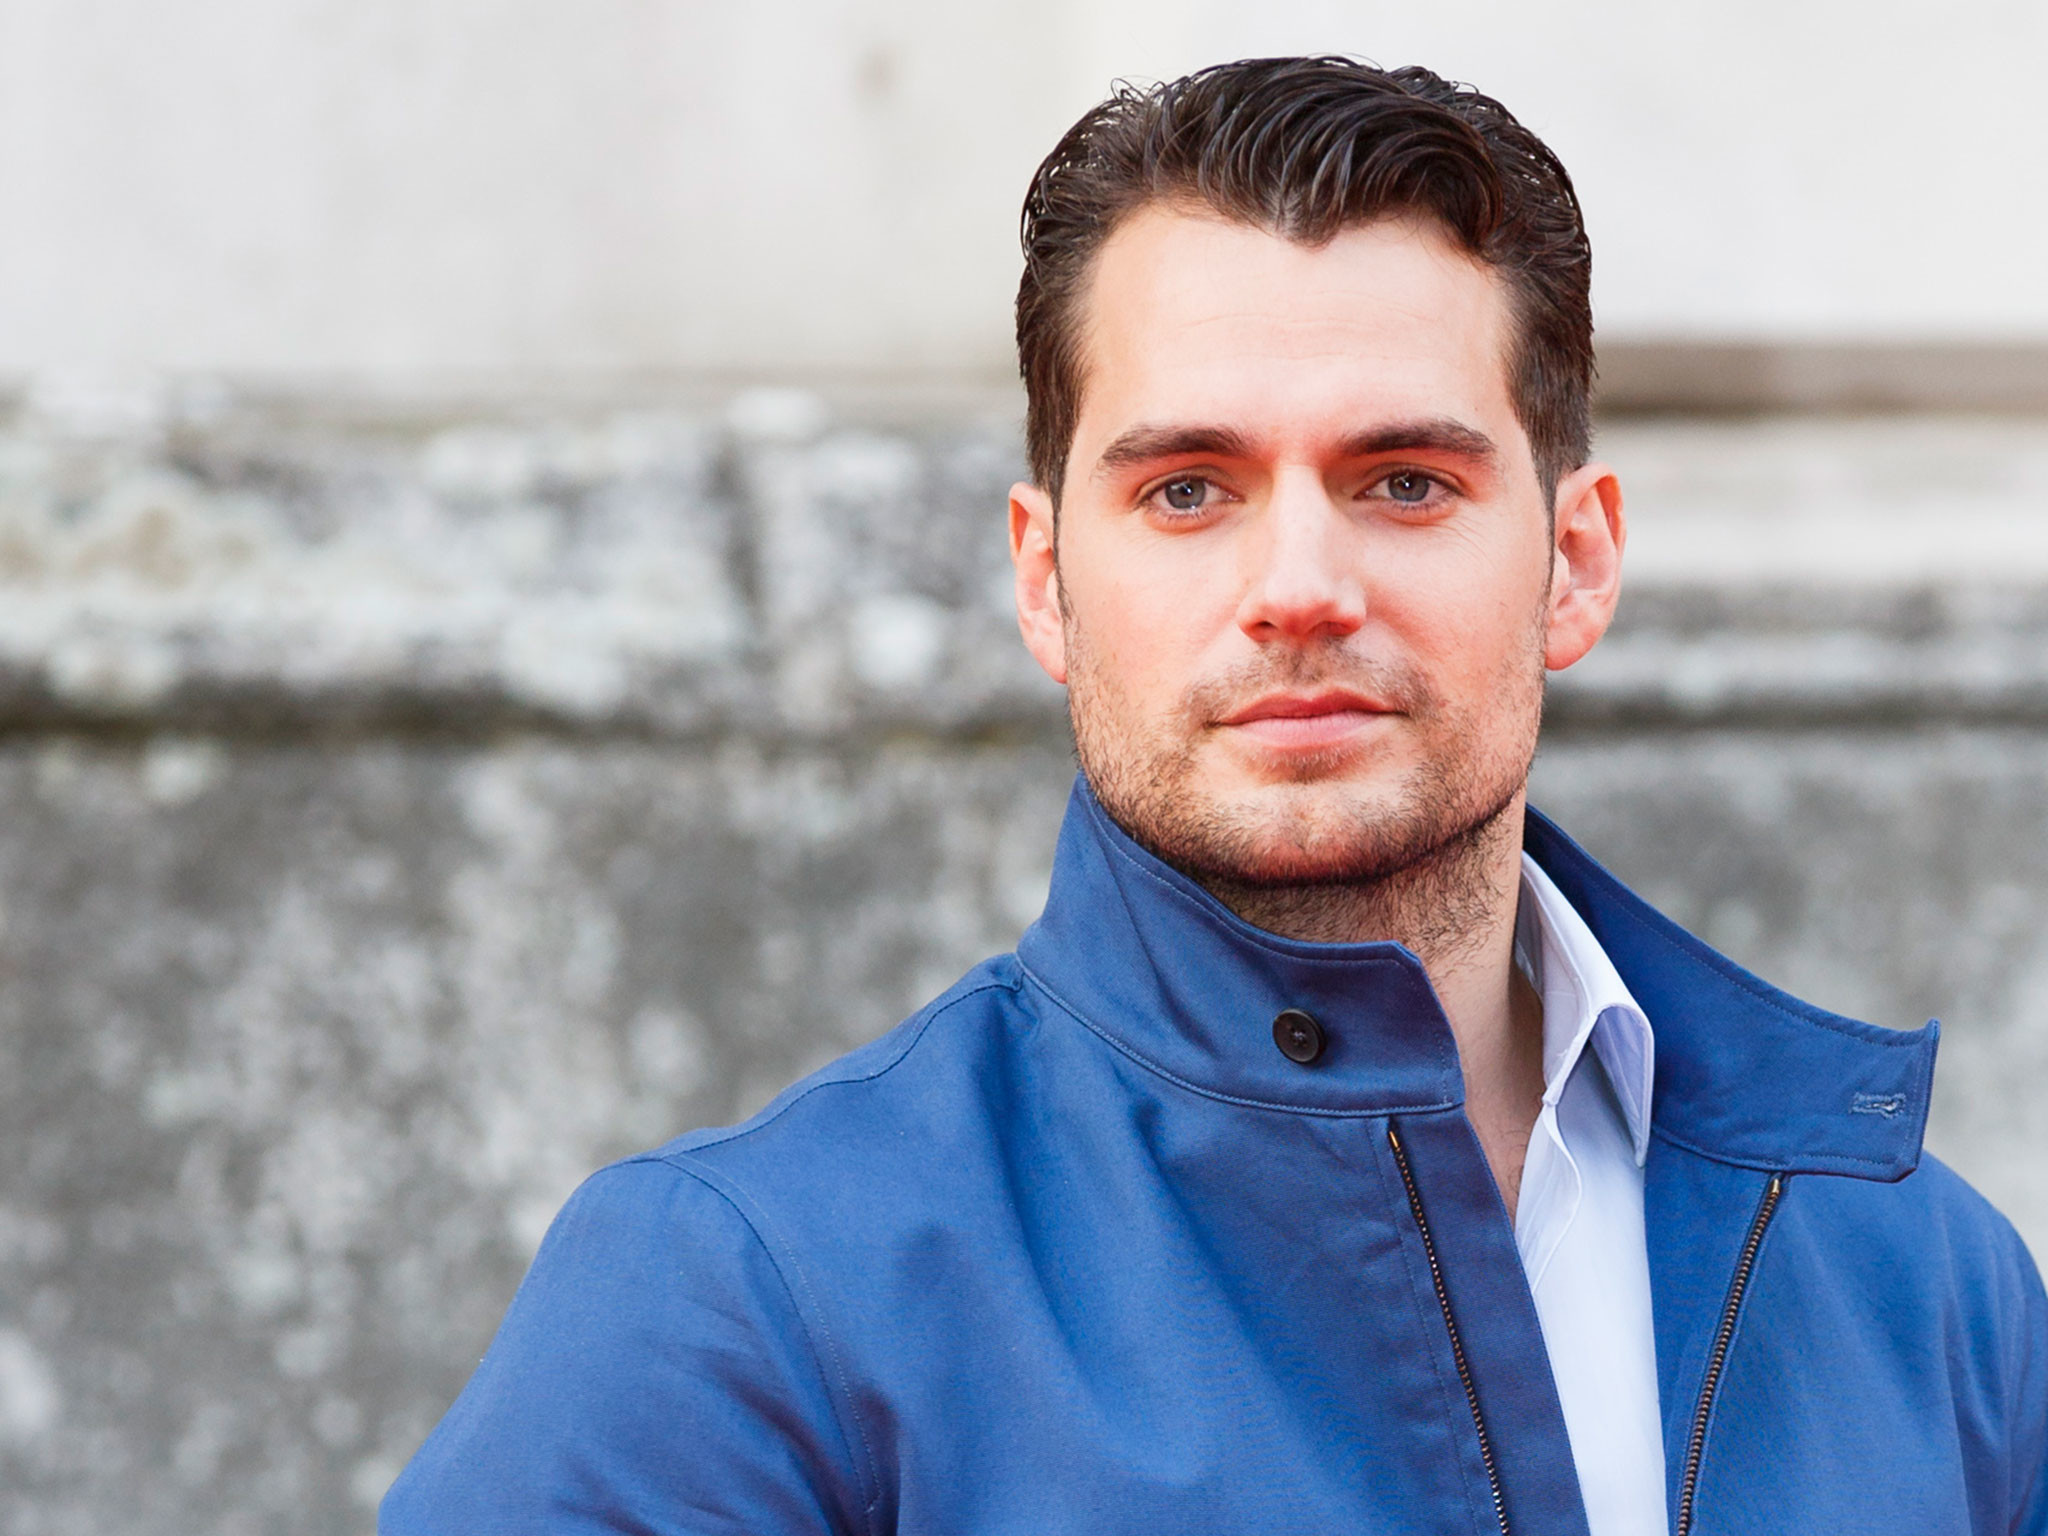 The awkward moment Henry Cavill got an 'unacceptable' erection shooting a  sex scene | The Independent